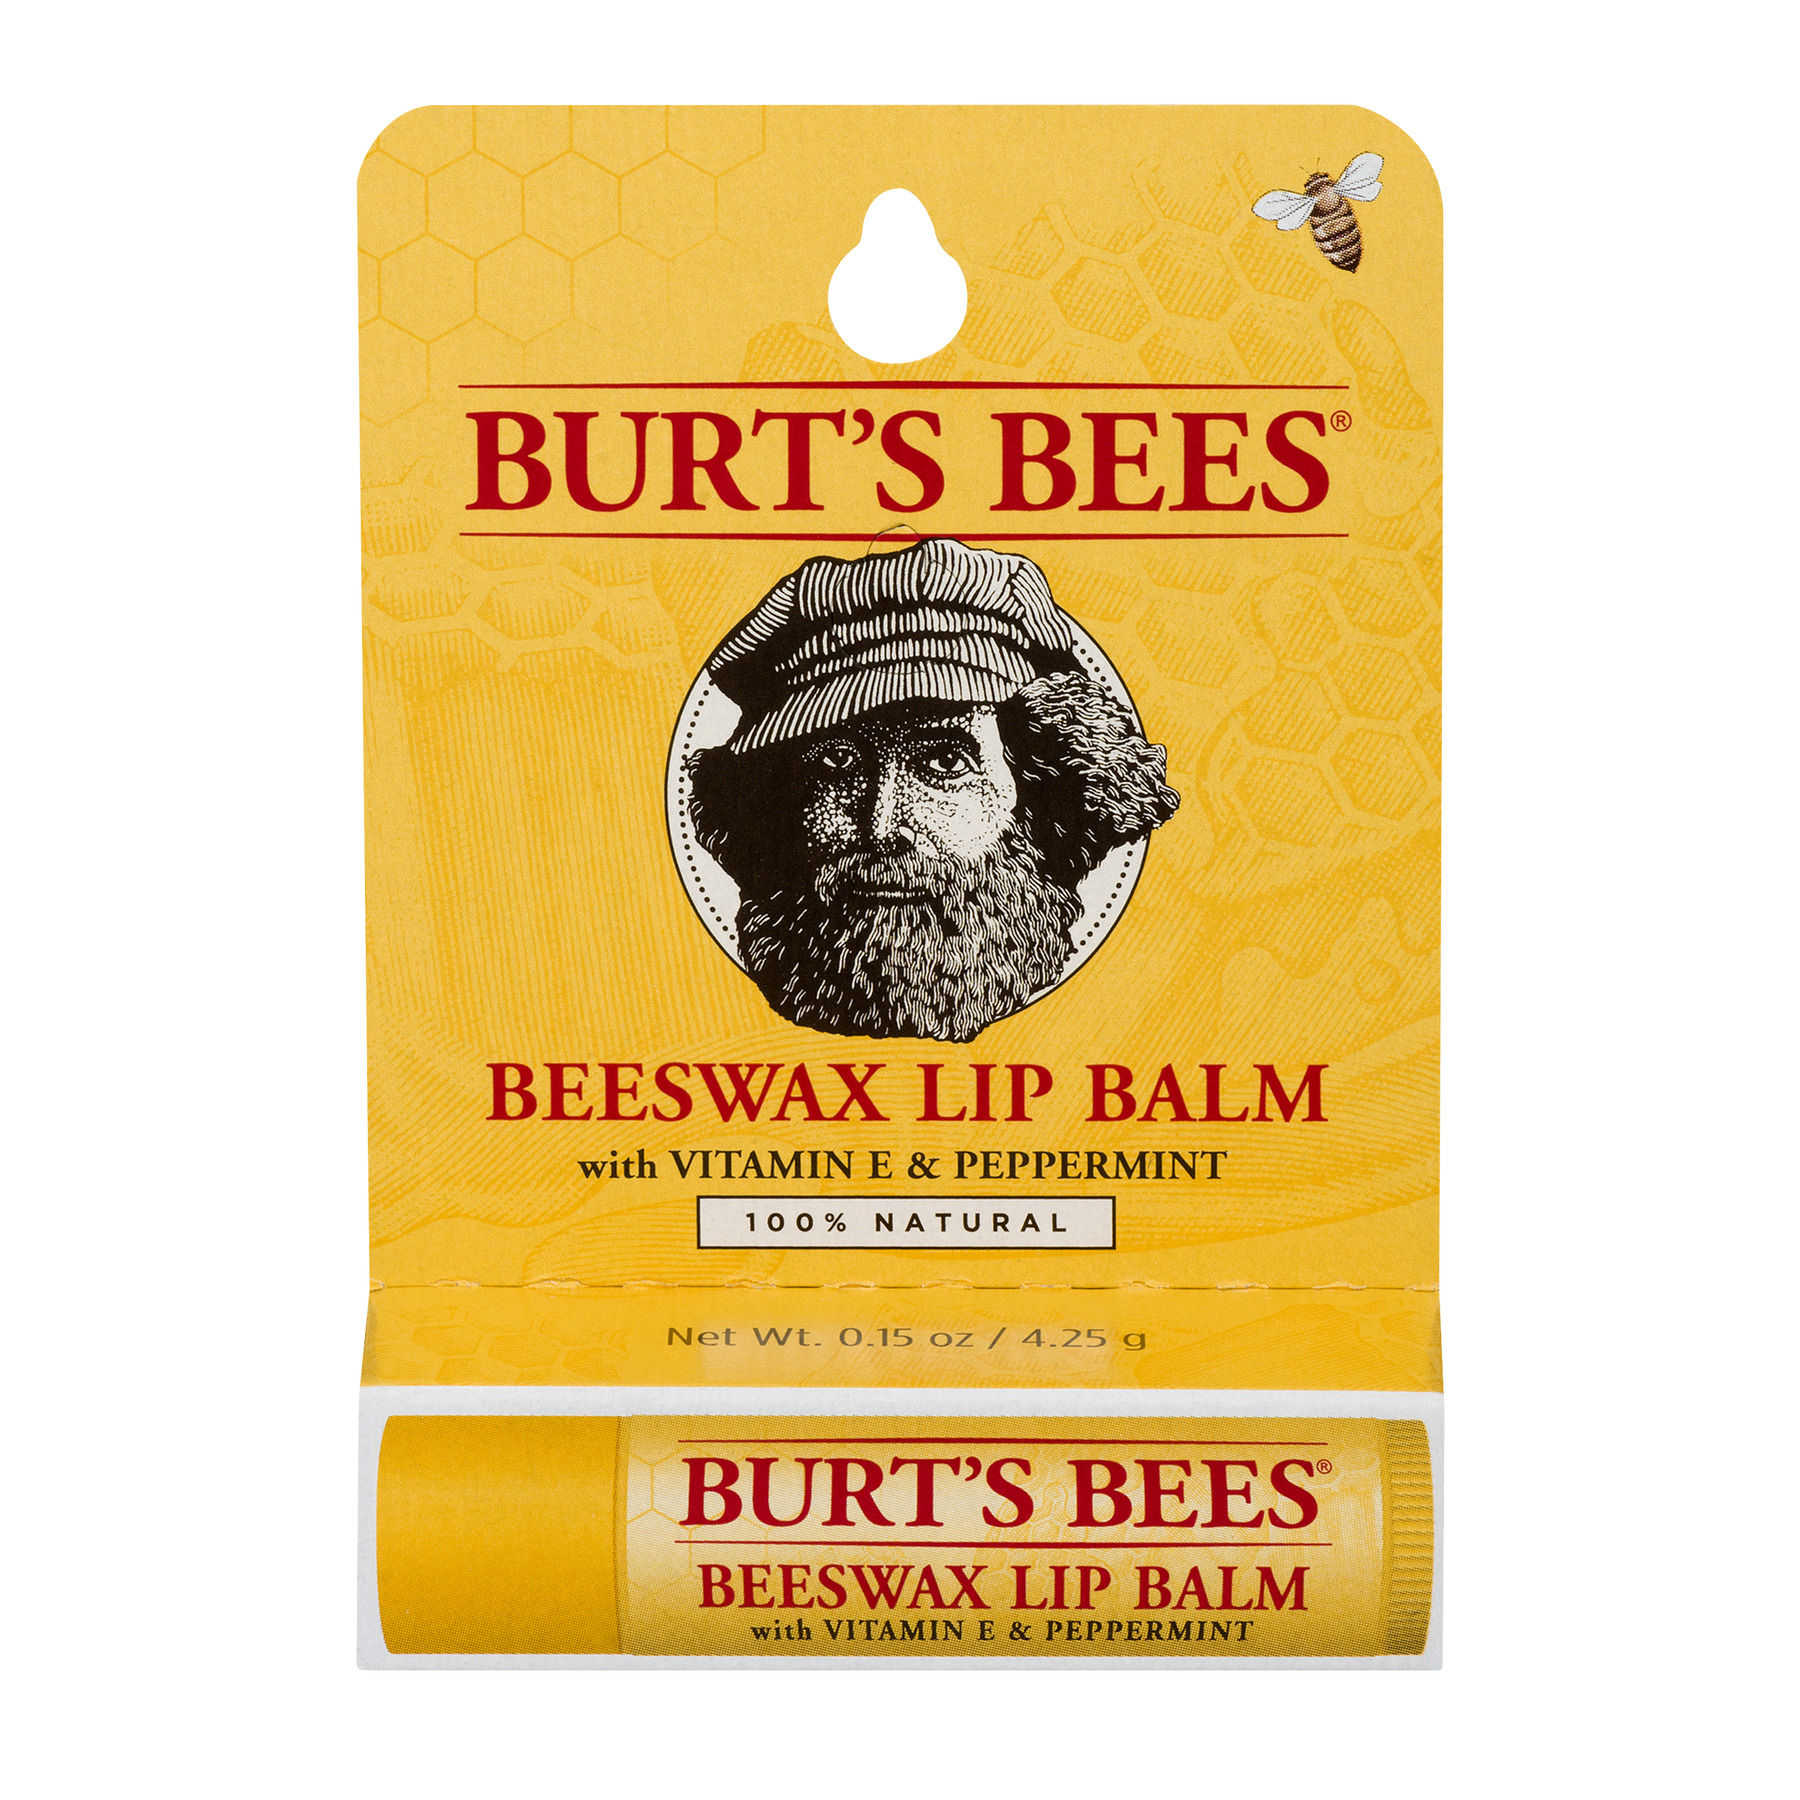 Burt's Bees 100% Natural Moisturizing Lip Balm, Original Beeswax with Vitamin E & Peppermint Oil -  1 Tube